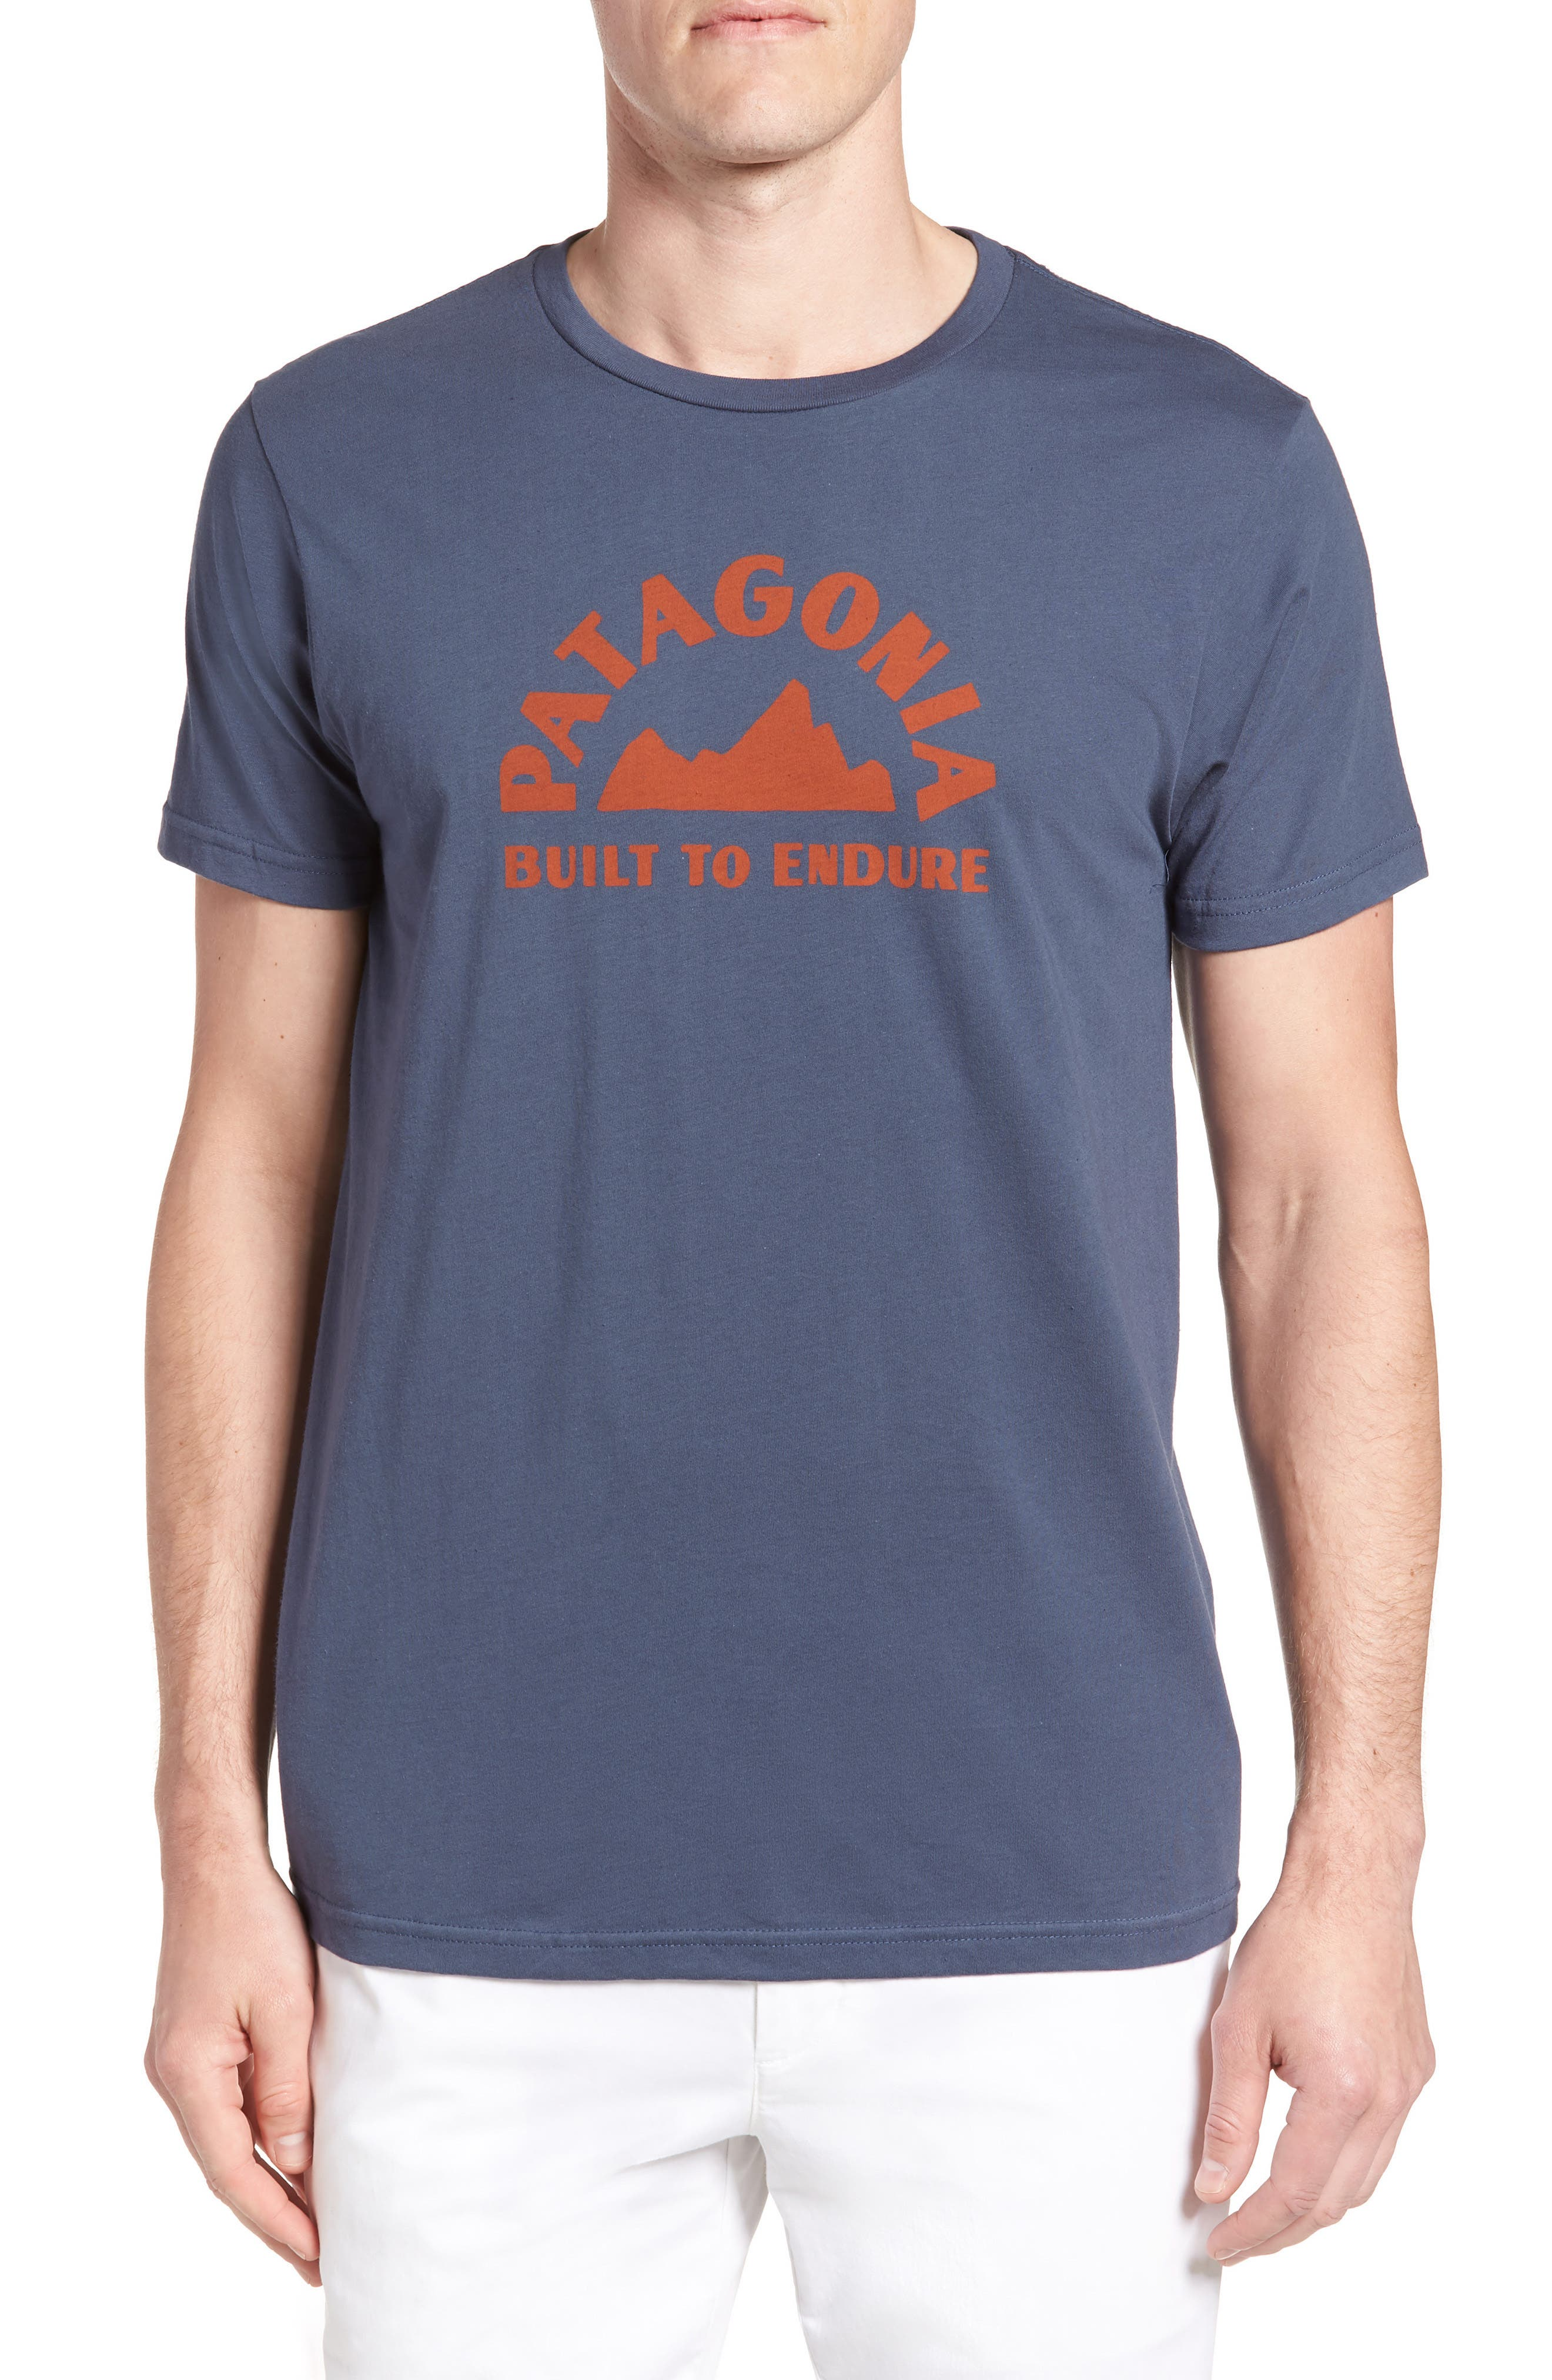 Geologers Organic Cotton T-Shirt,                         Main,                         color, Dolomite Blue